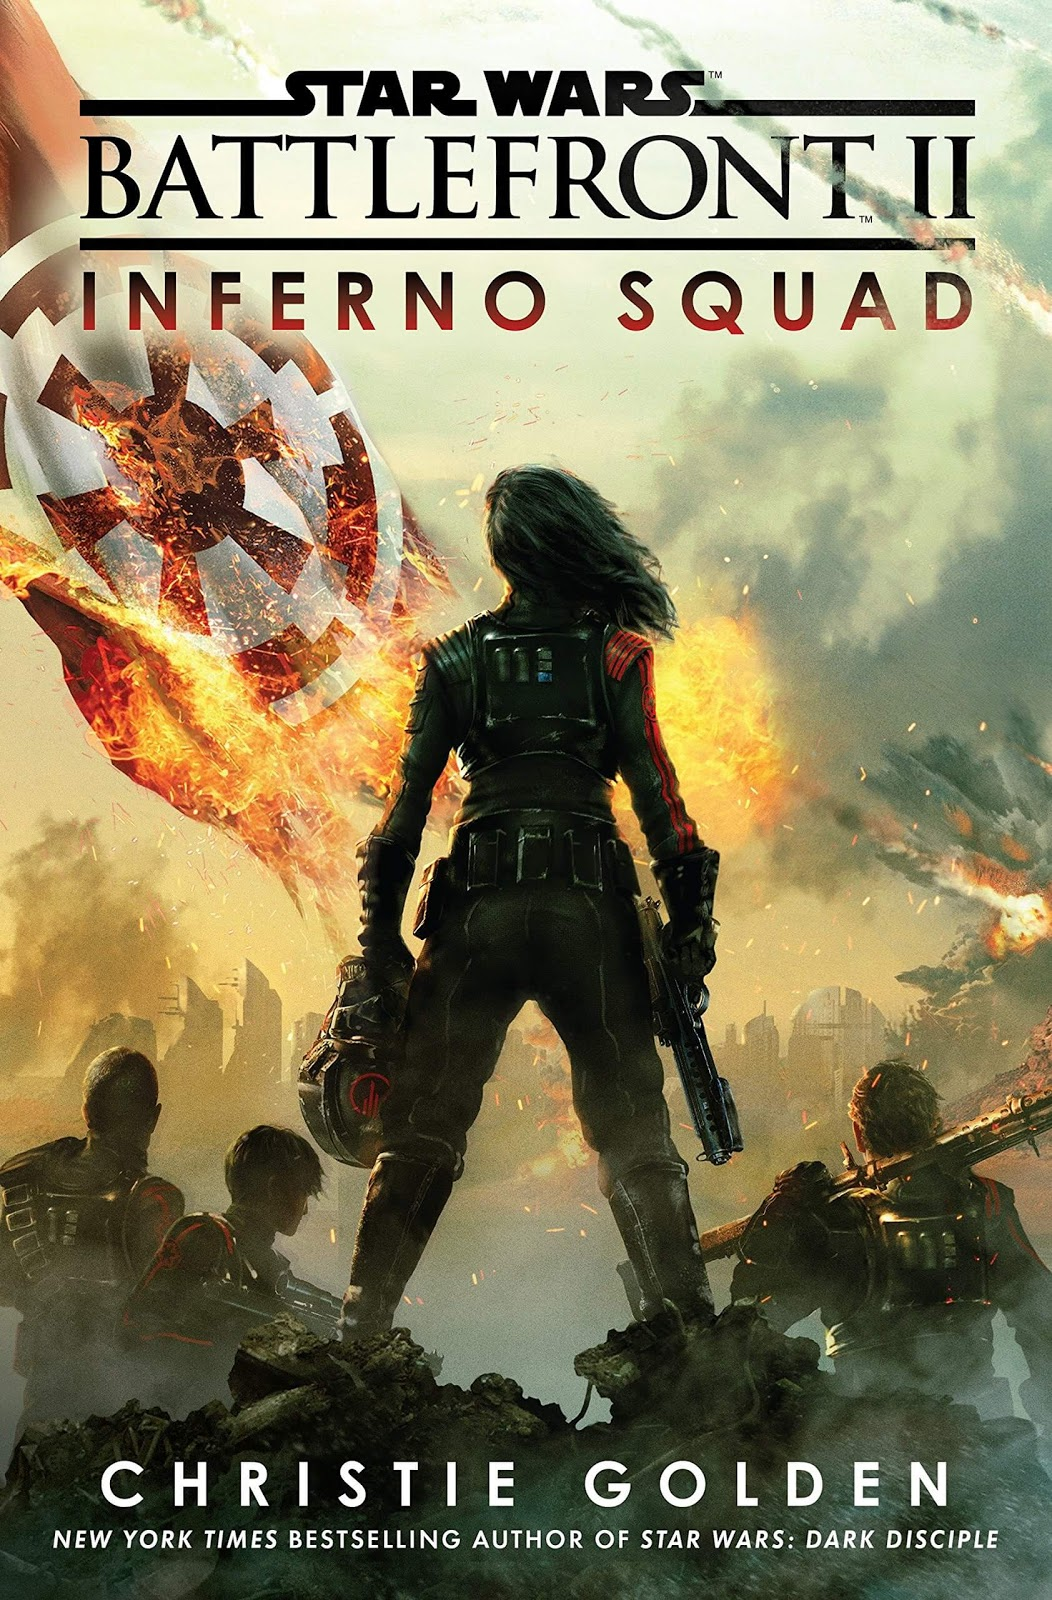 Battlefront 2: Inferno Squad by Christie Golden